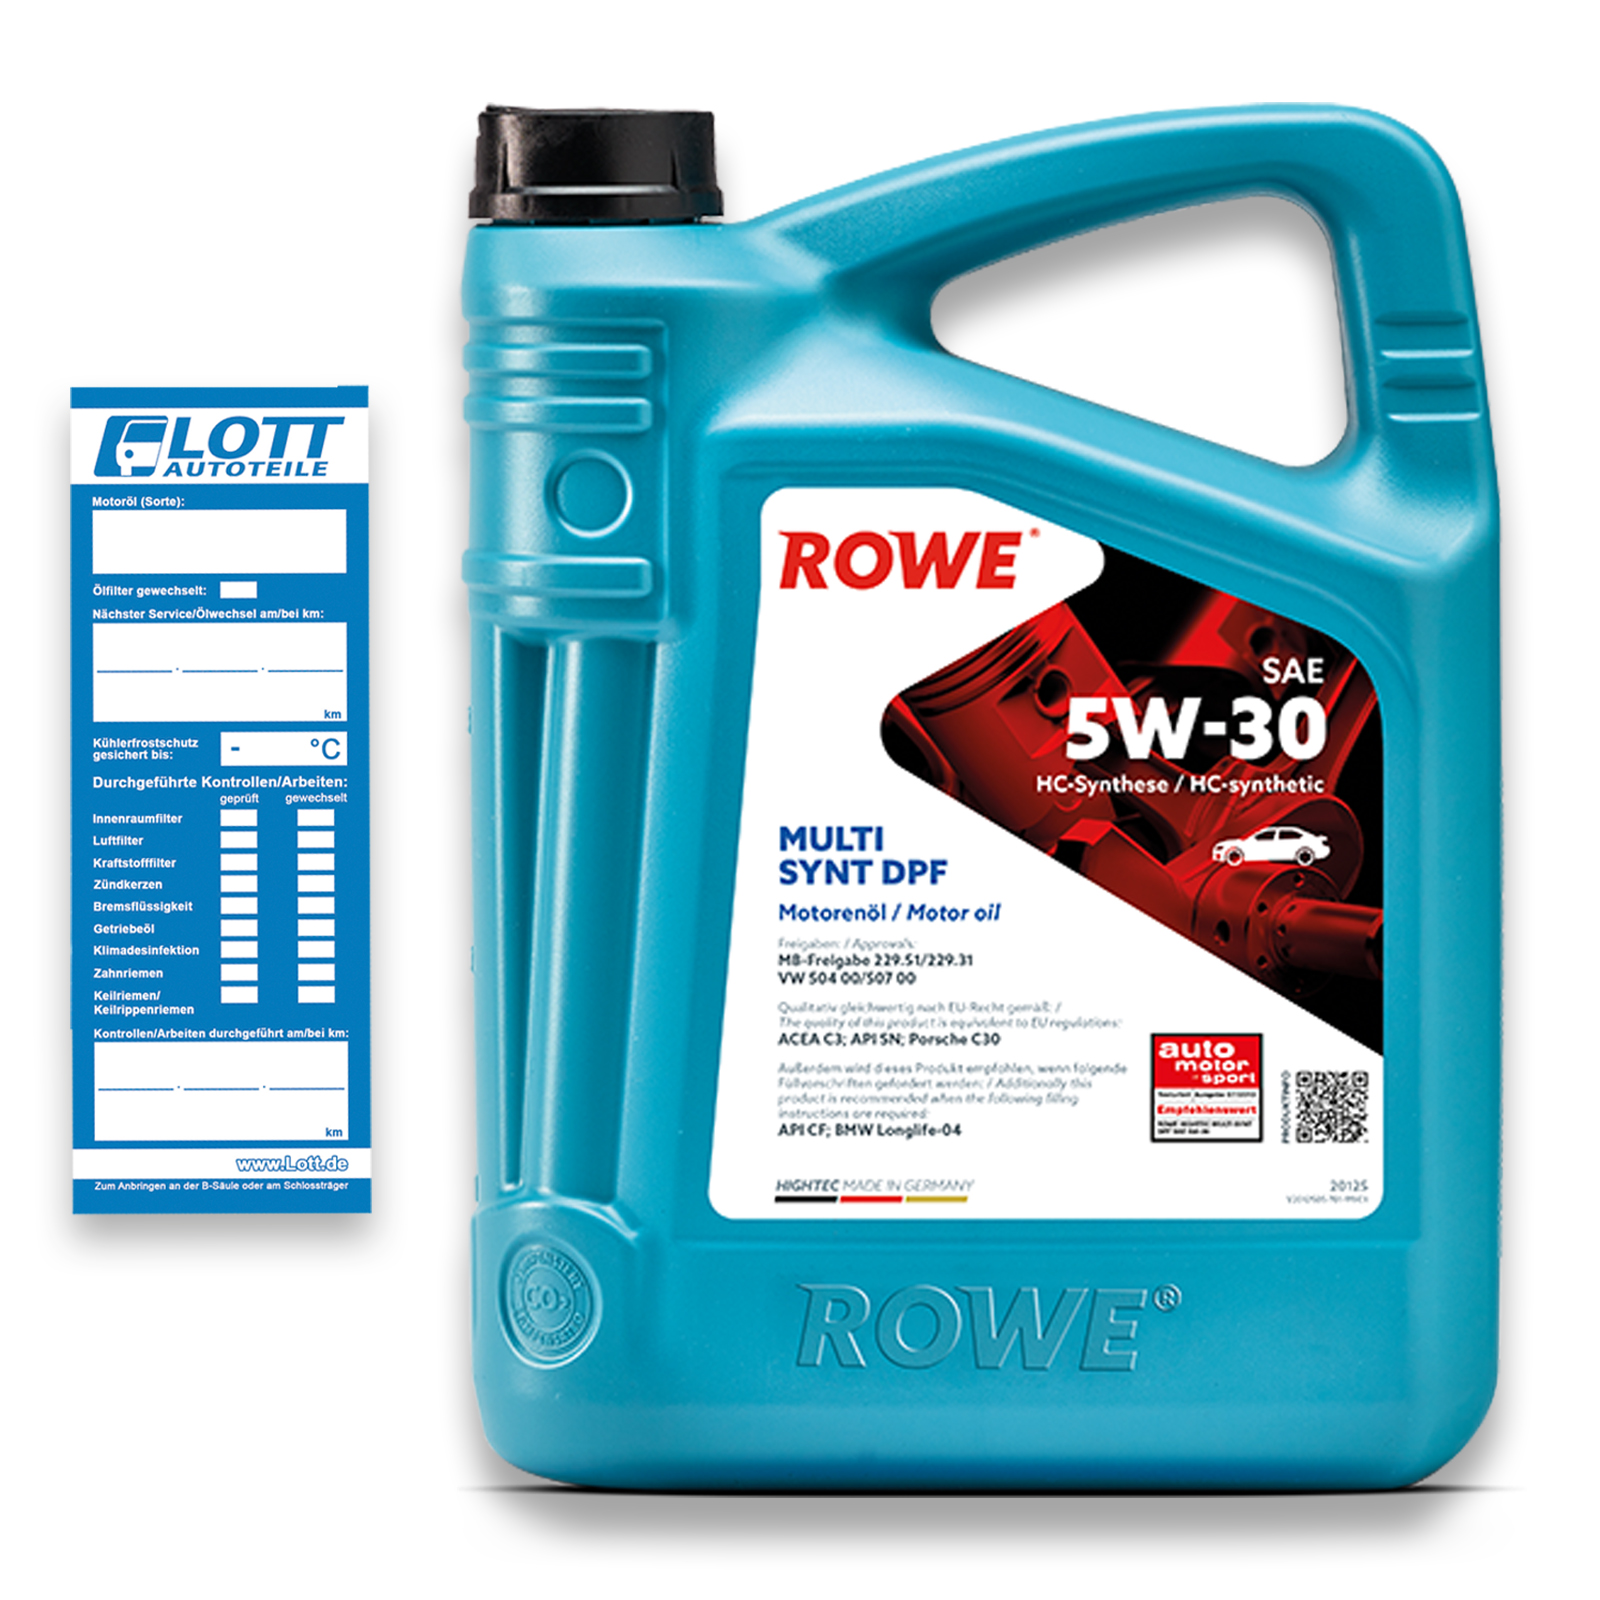 5L ROWE MOTORÖL HIGHTEC MULTI SYNT DPF 5W-30